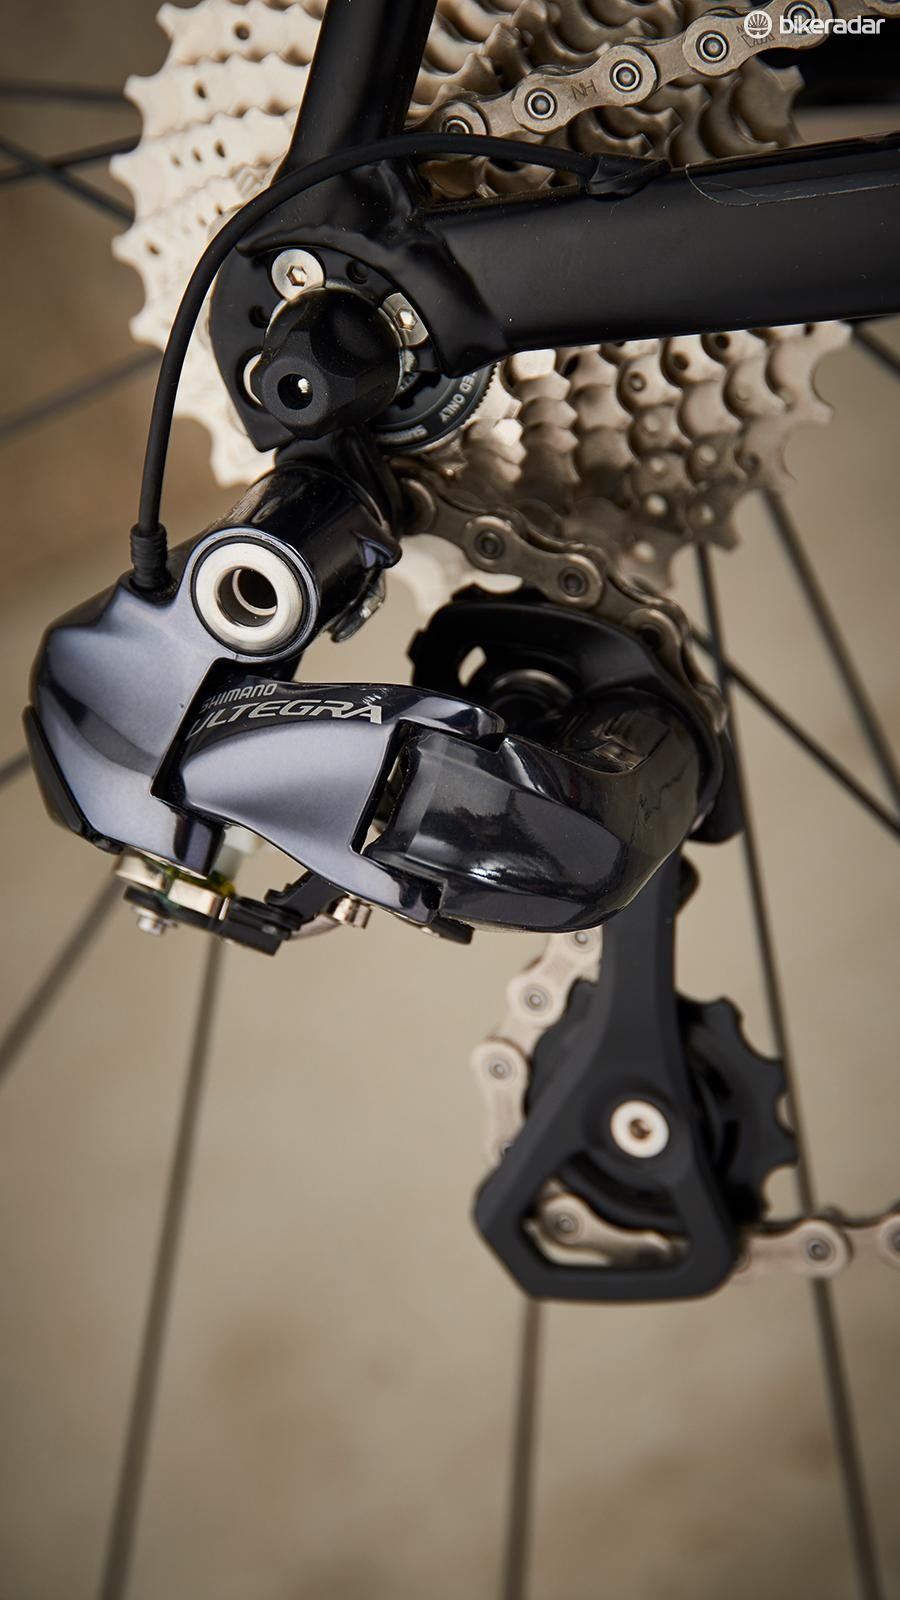 Shimano Ultegra Di2 provides the go